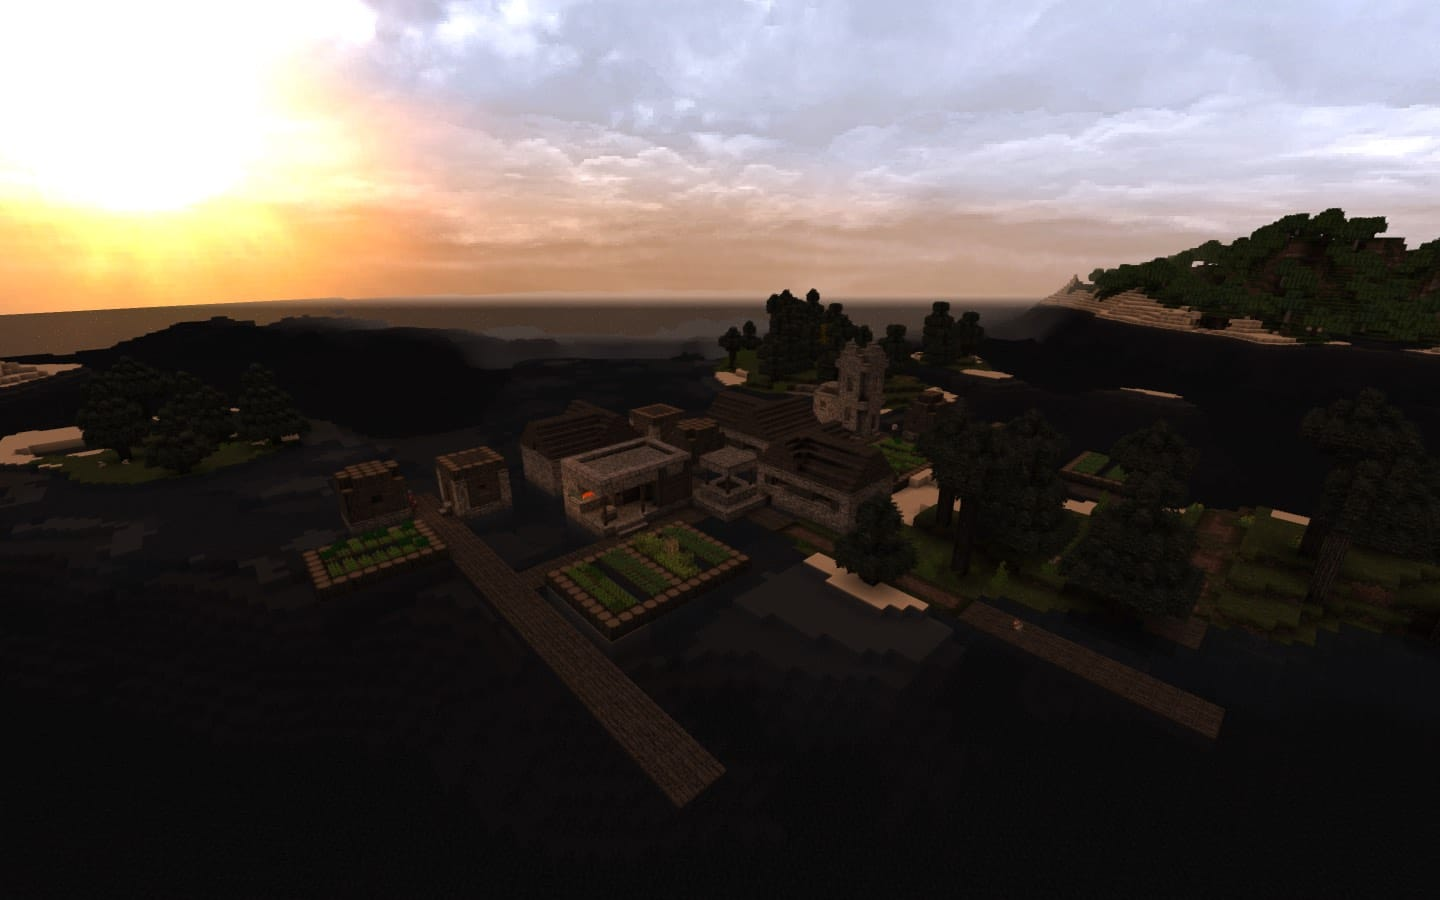 Minecraft Screenshot of Island Village at Sunset